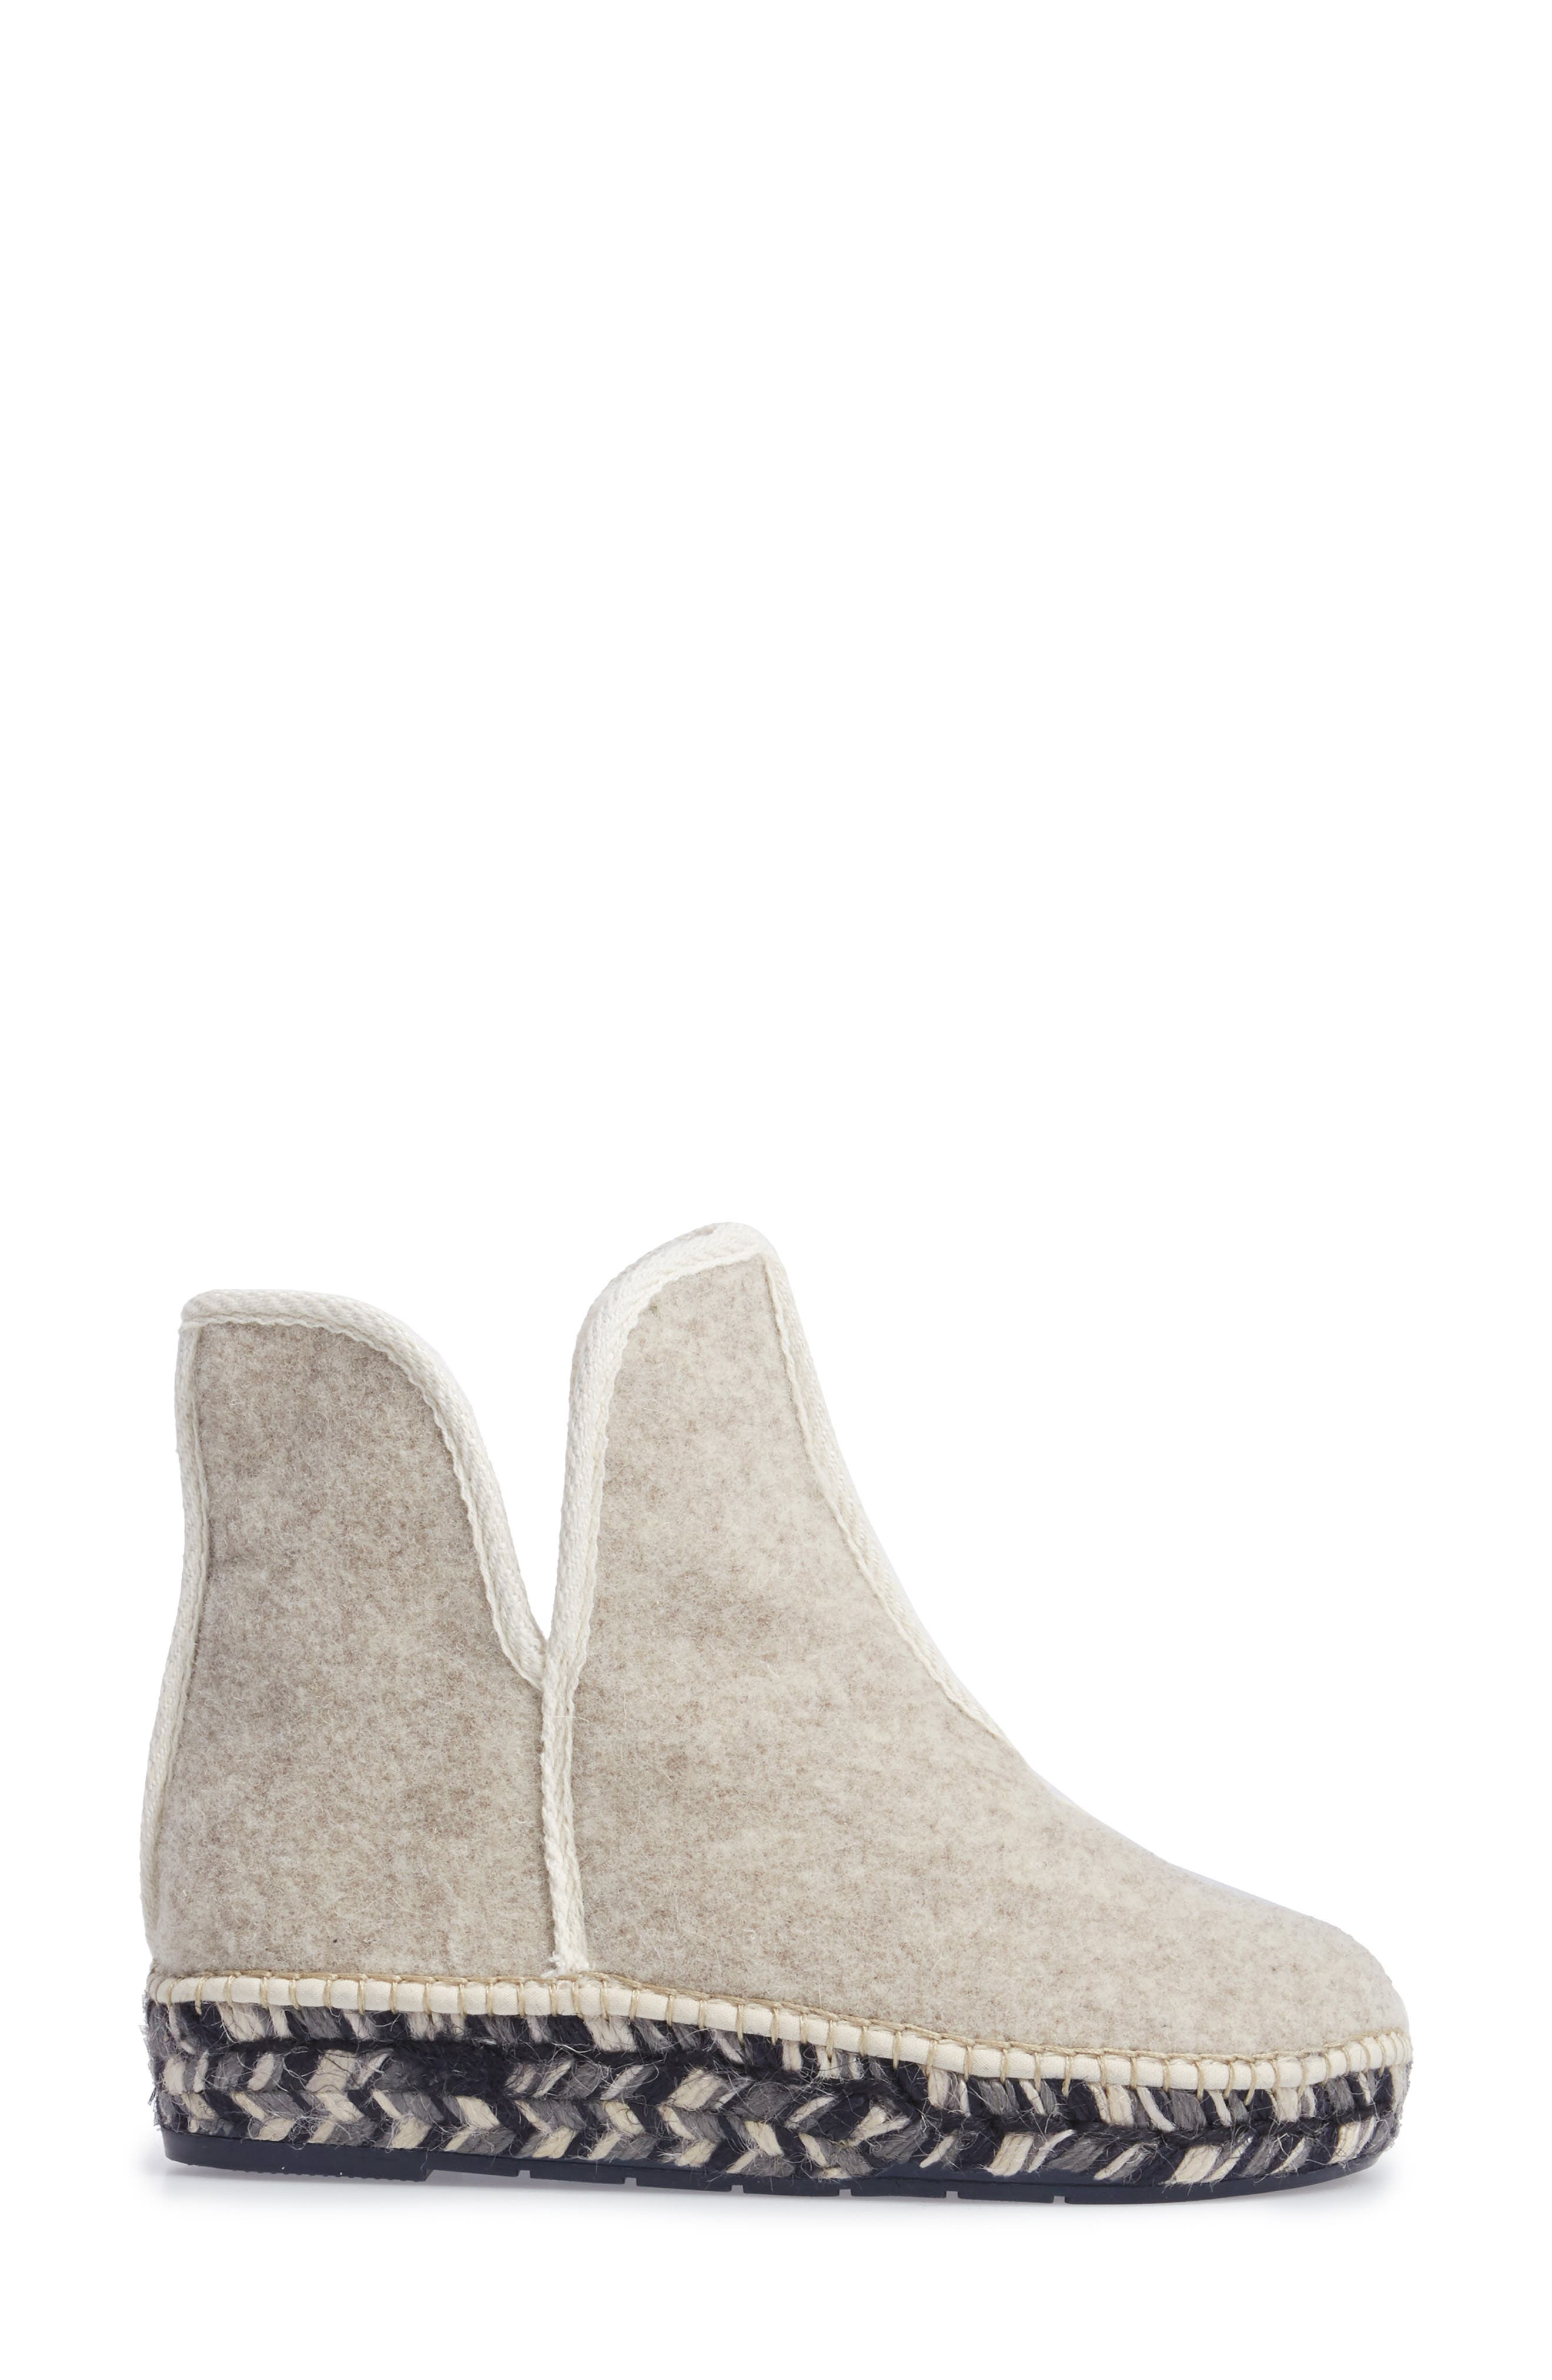 Espadrille Platform Bootie with Faux Fur Lining,                             Alternate thumbnail 3, color,                             ECRU FELT